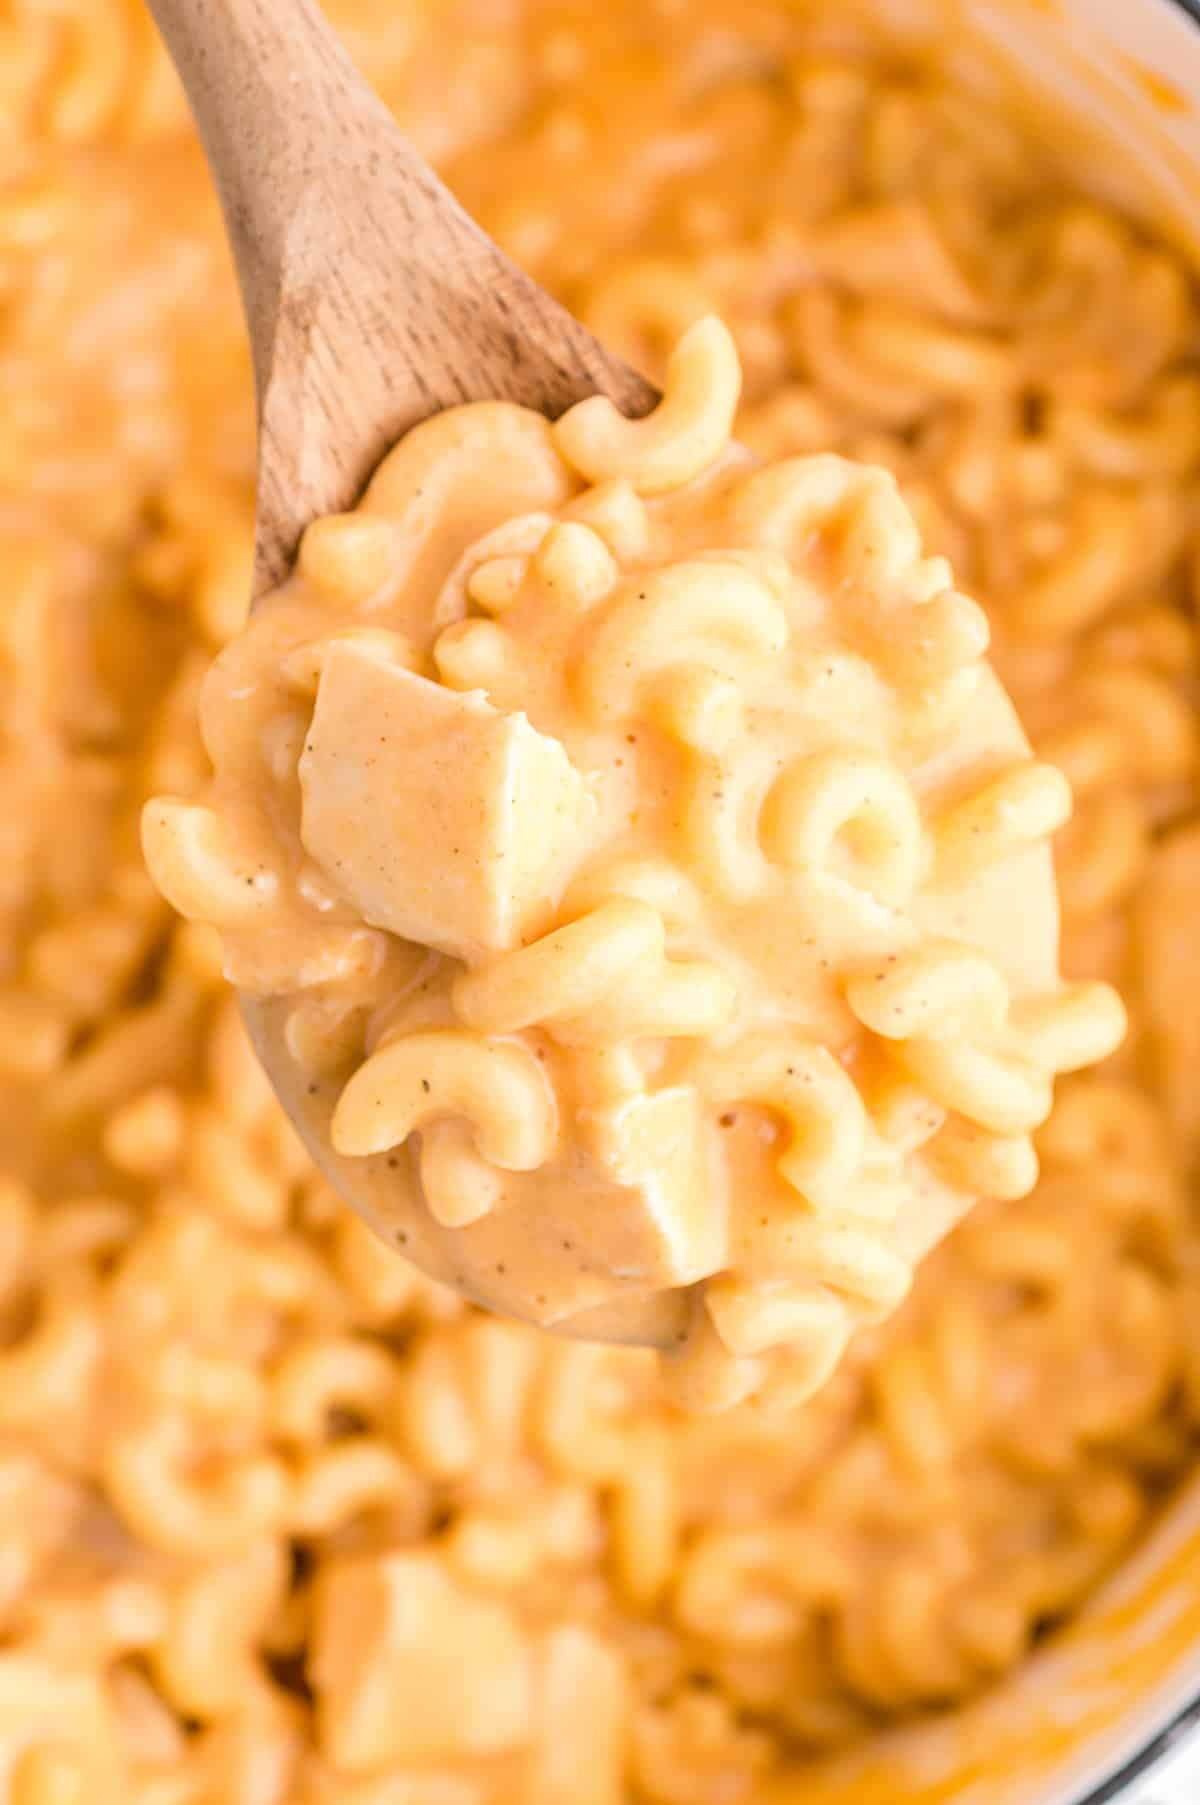 Wooden spoon lifting a spoonful of buffalo chicken mac and cheese out of large pot